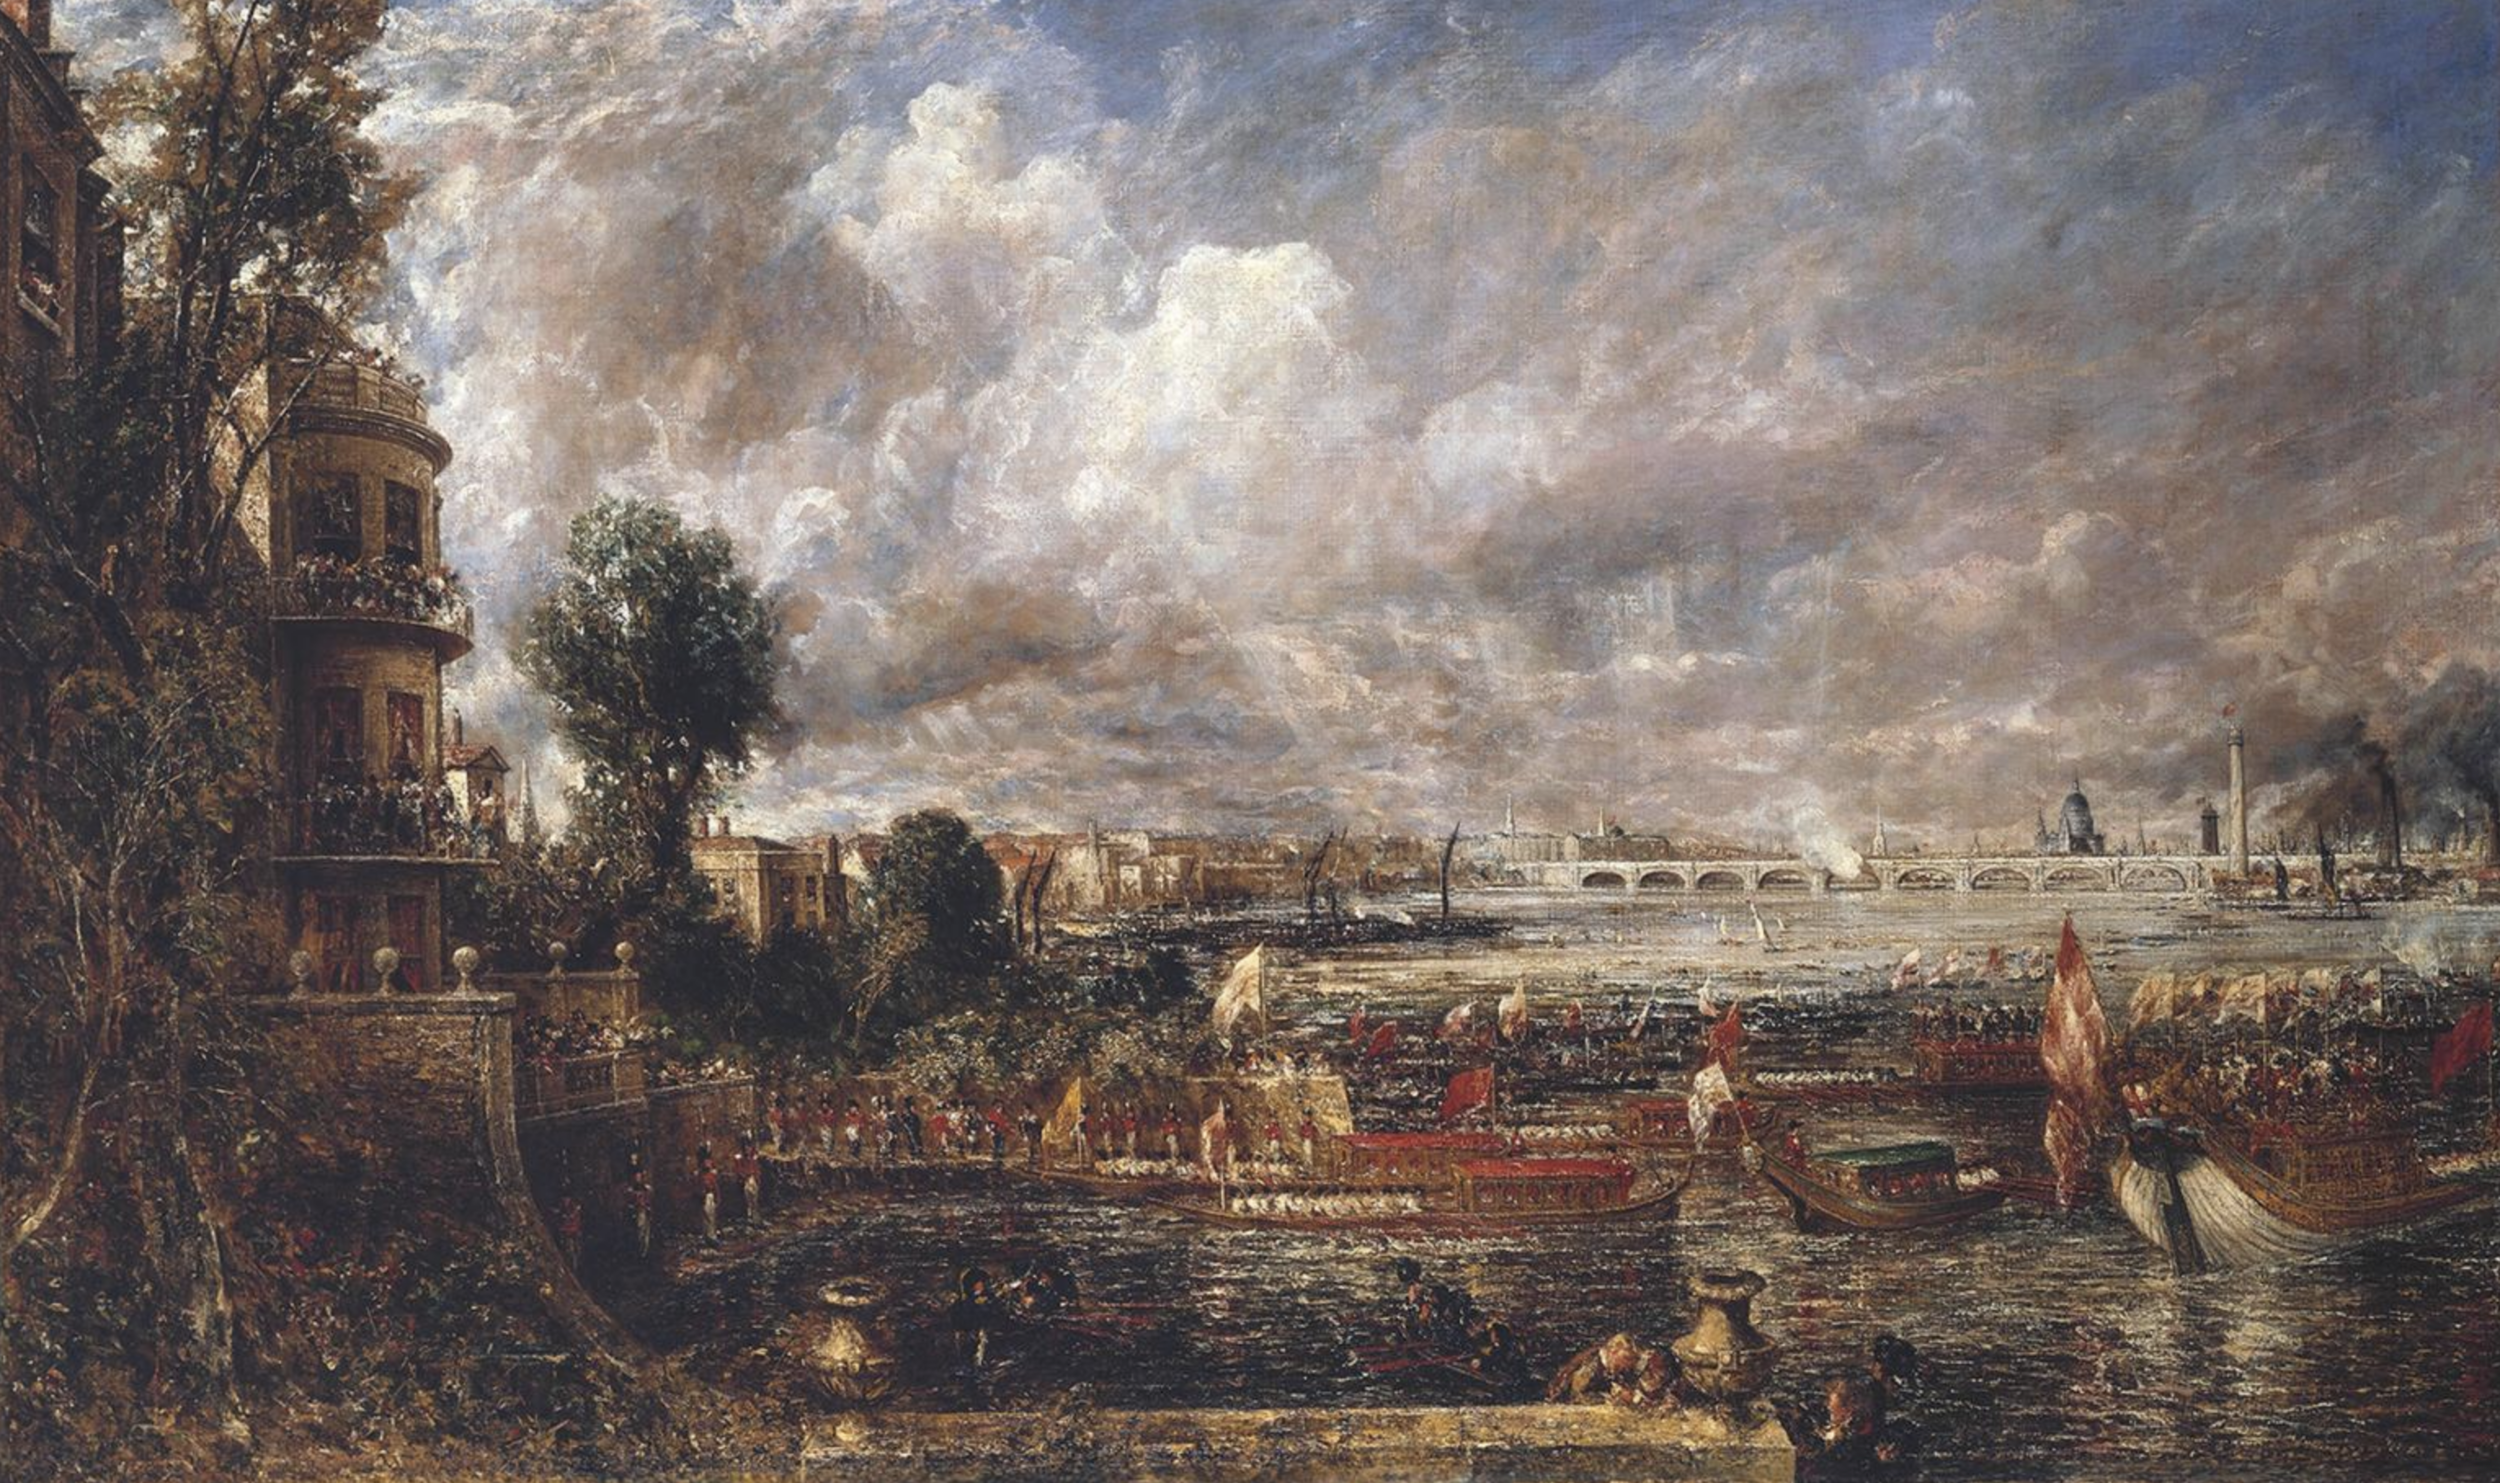 John Constable - The Opening of Waterloo Bridge